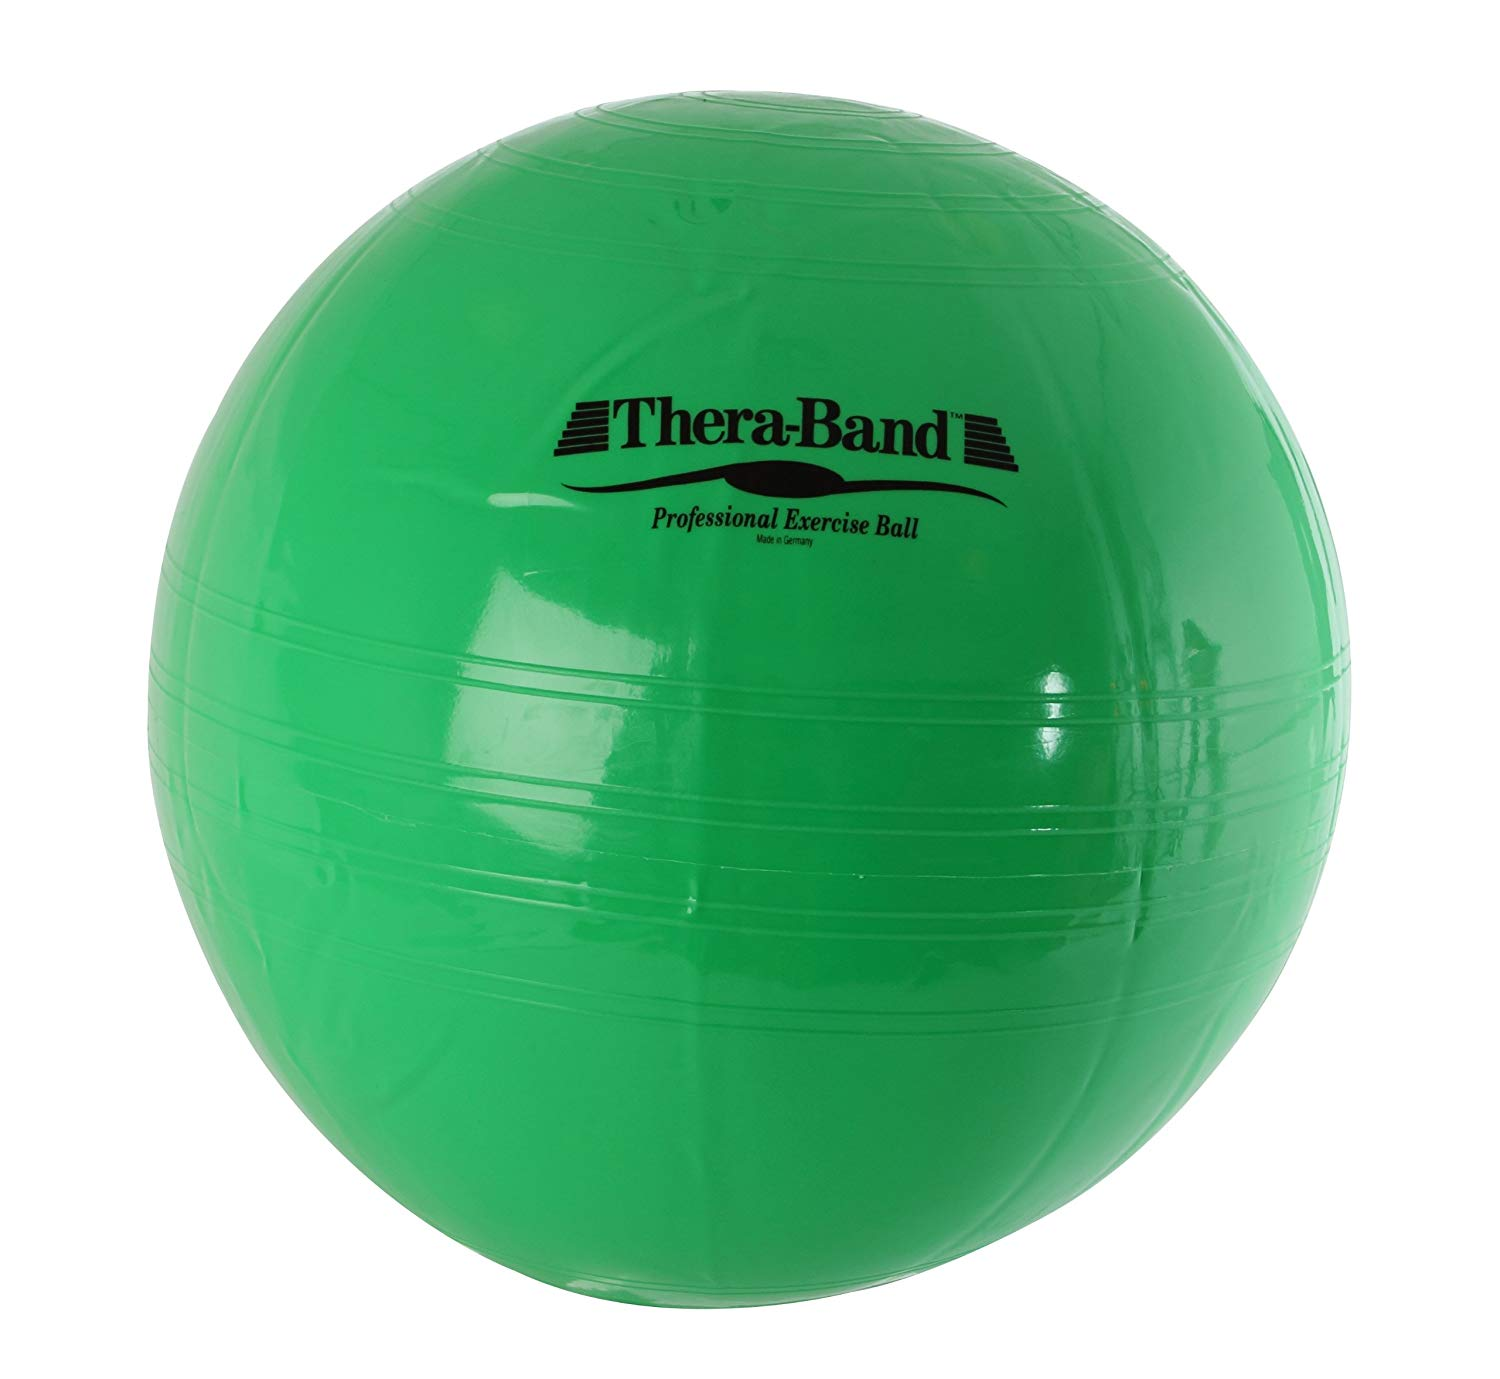 Thera-Band® Exercise Ball, 65 cm, Green